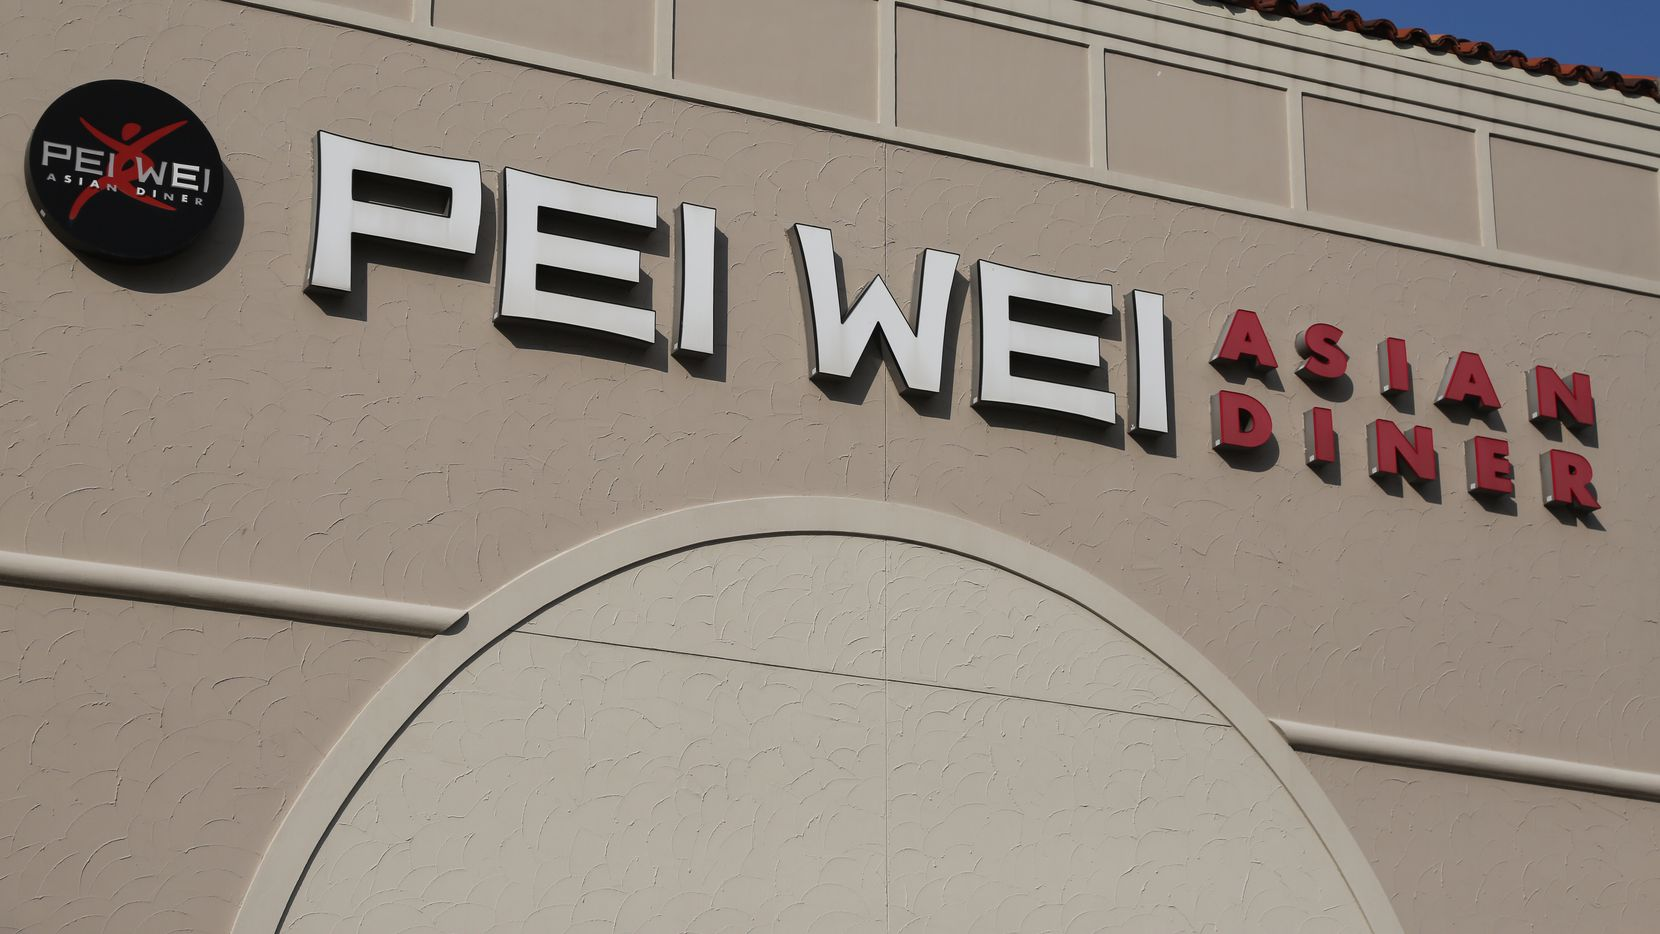 Exterior of the Pei Wei Asian Diner at Uptown Plaza on McKinney Ave in Dallas photographed Tuesday August 7, 2017 (Ron Baselice/The Dallas Morning News)